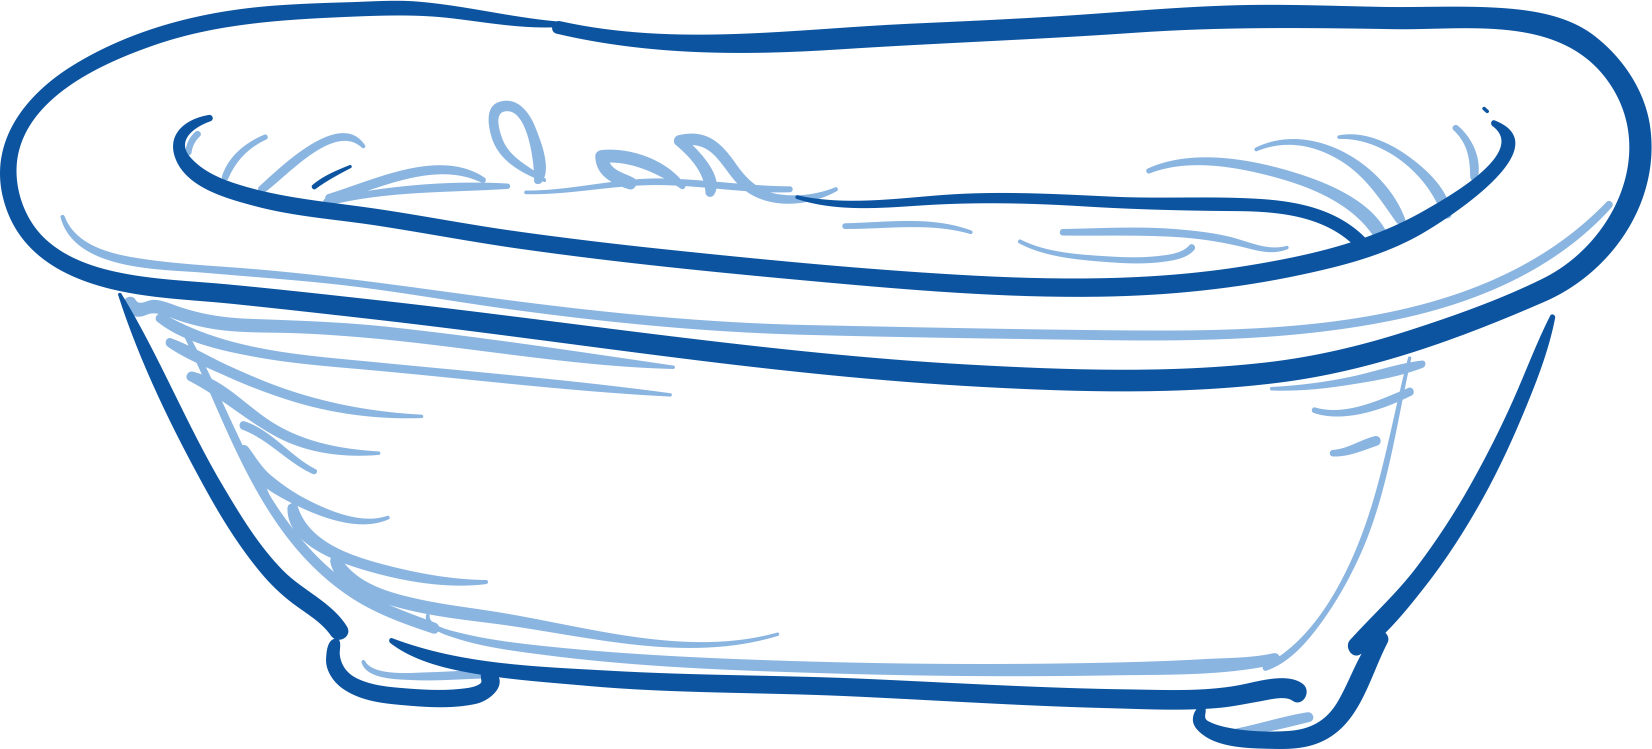 Bath tub.png